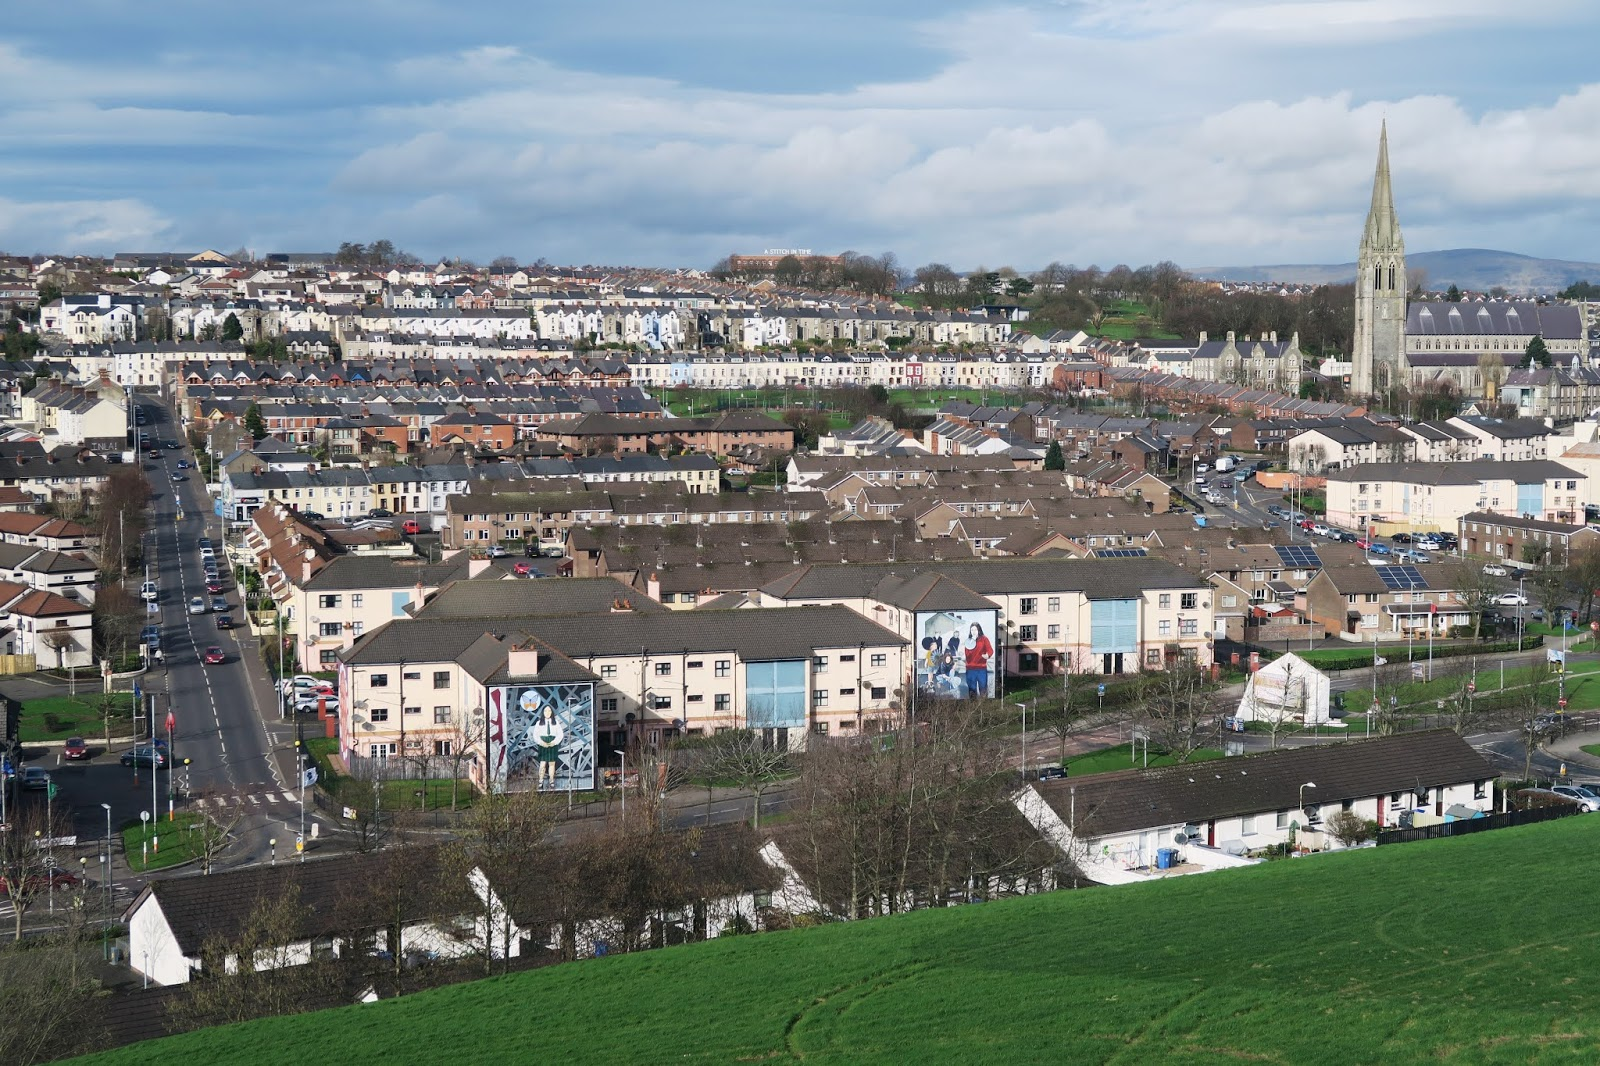 Looking down from the medieval Derry city walls over the Bogside which is a residential area with many murals on the sides of houses